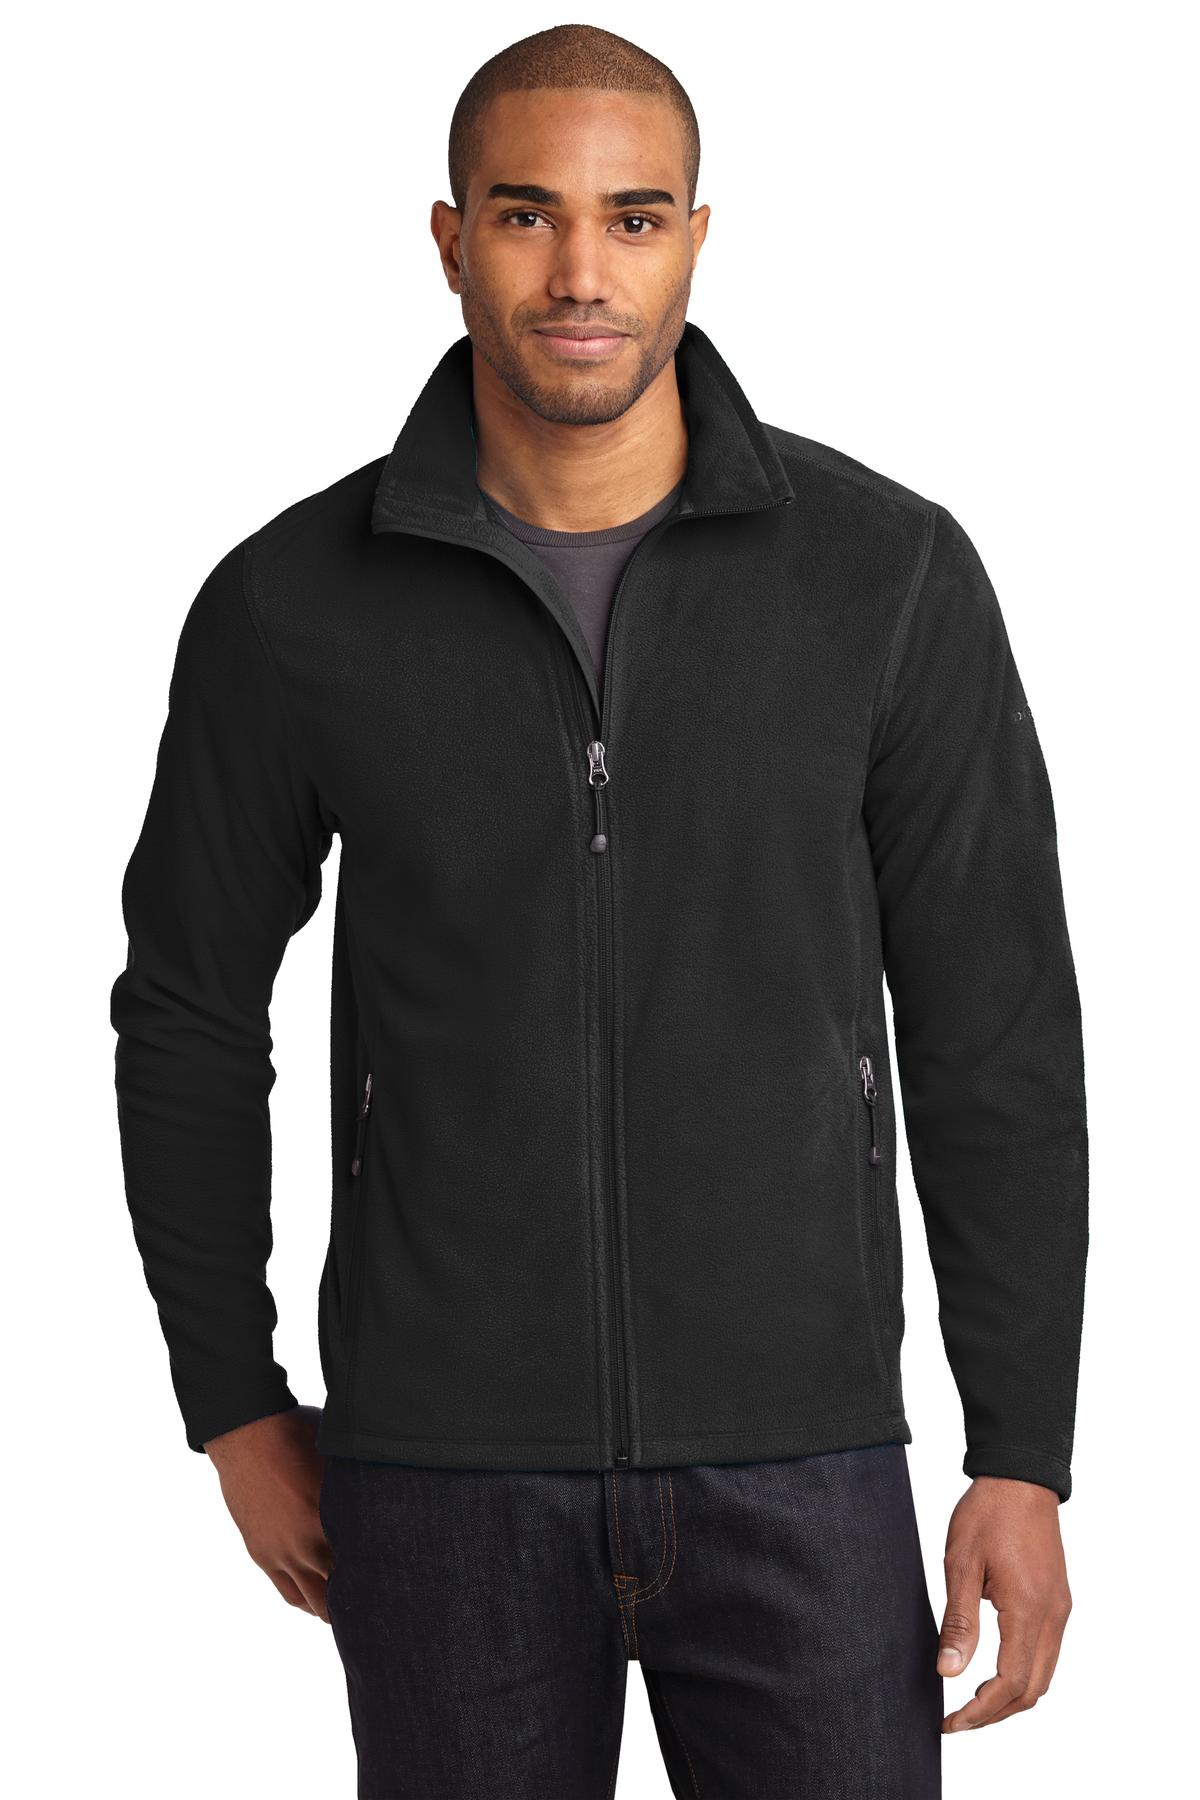 Eddie Bauer ®  Full-Zip Microfleece Jacket. EB224 - Black